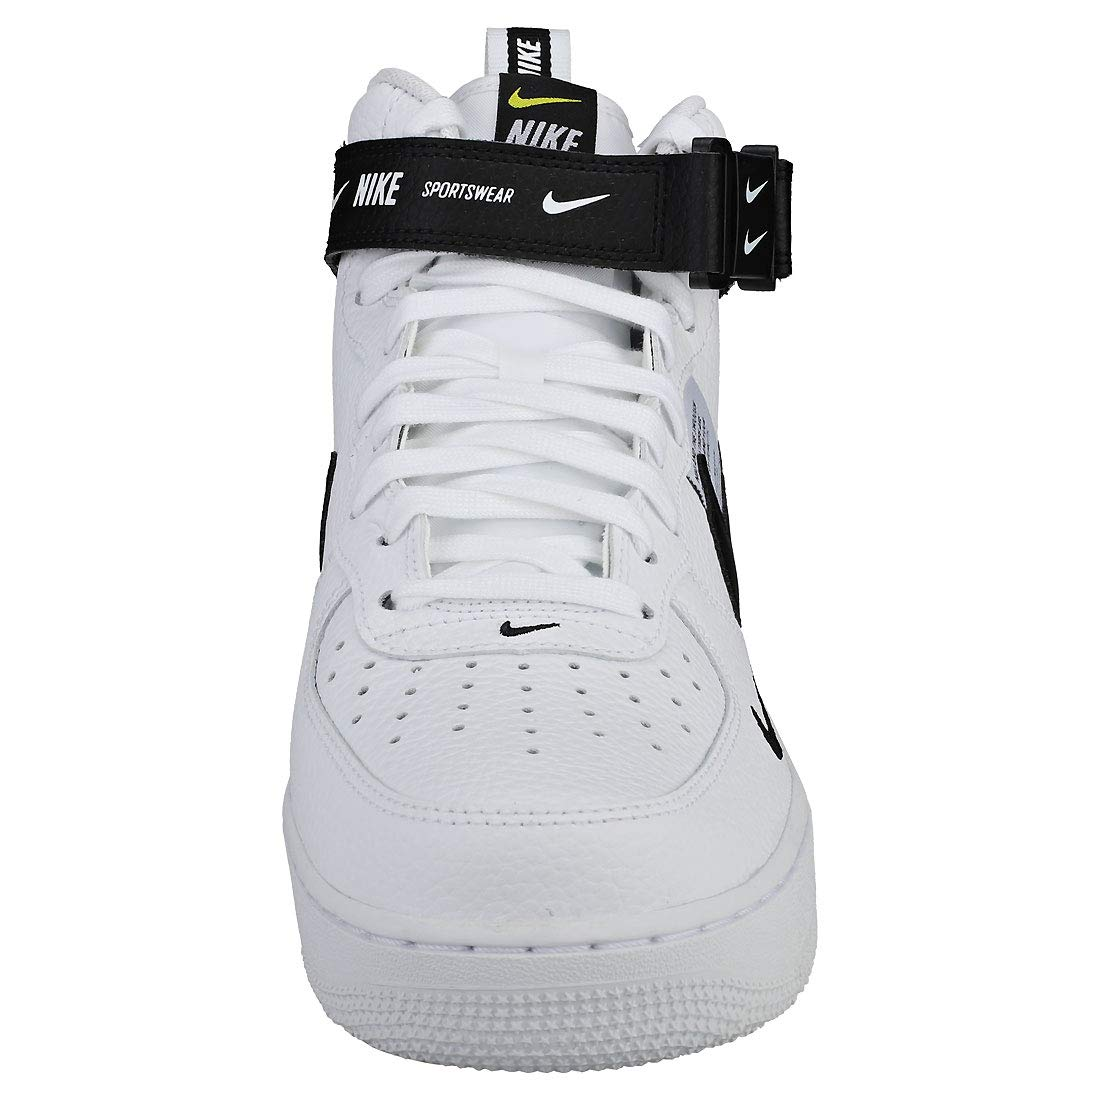 pretty nice 4fc08 57d0b NIKE Air Force 1 Mid 07 Lv8 Mens Trainers White Black - 10 UK   Amazon.co.uk  Shoes   Bags